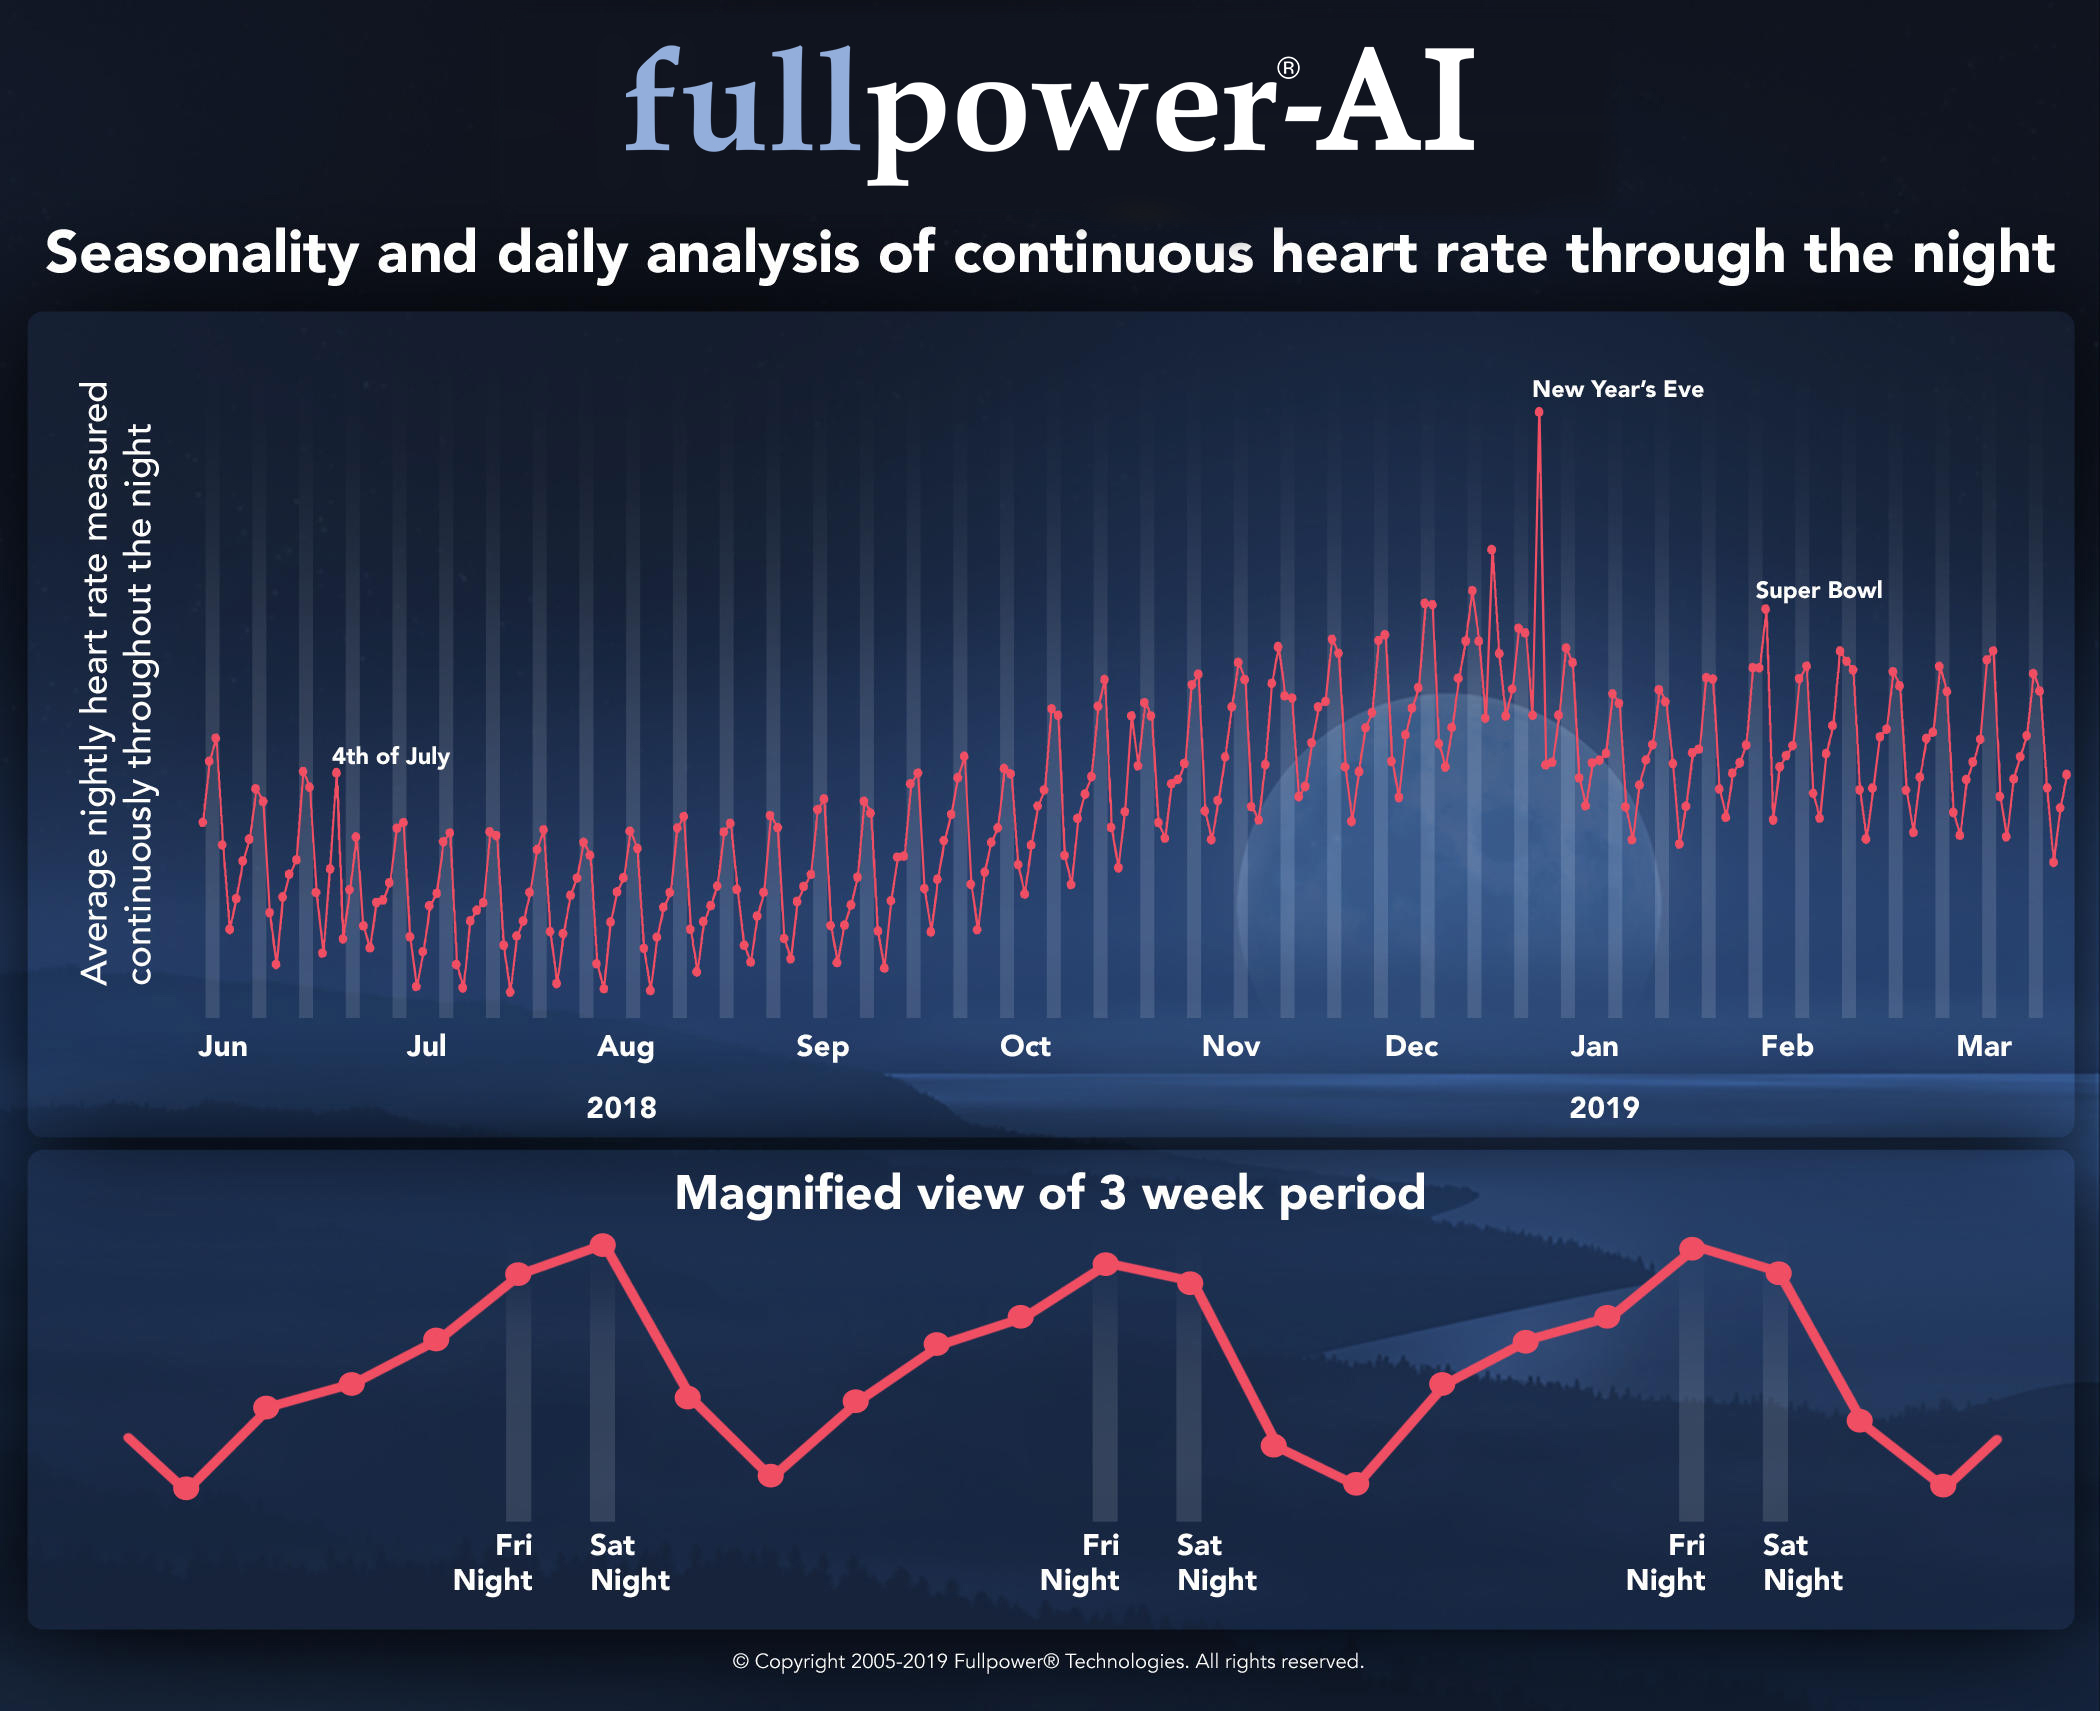 Seasonality and Daily Analysis of Continuous Heart Rate Through the Night